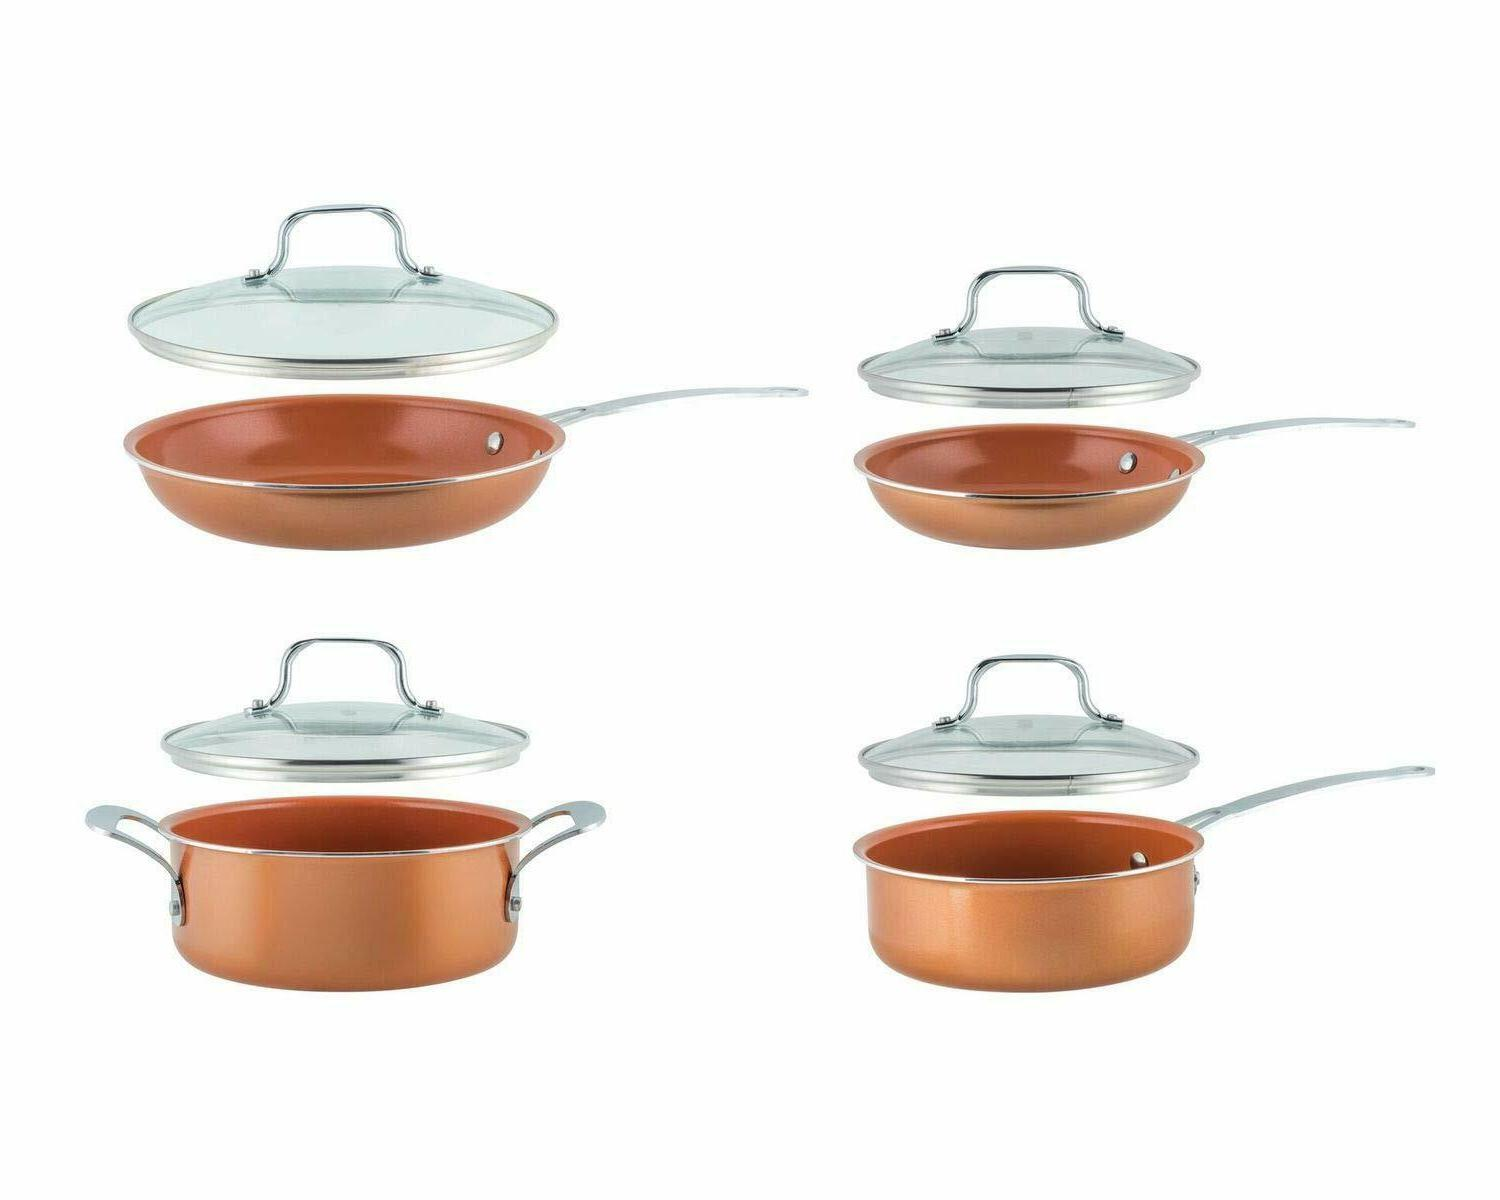 8-Piece Copper Nonstick Alum/Stainless Cookware Set